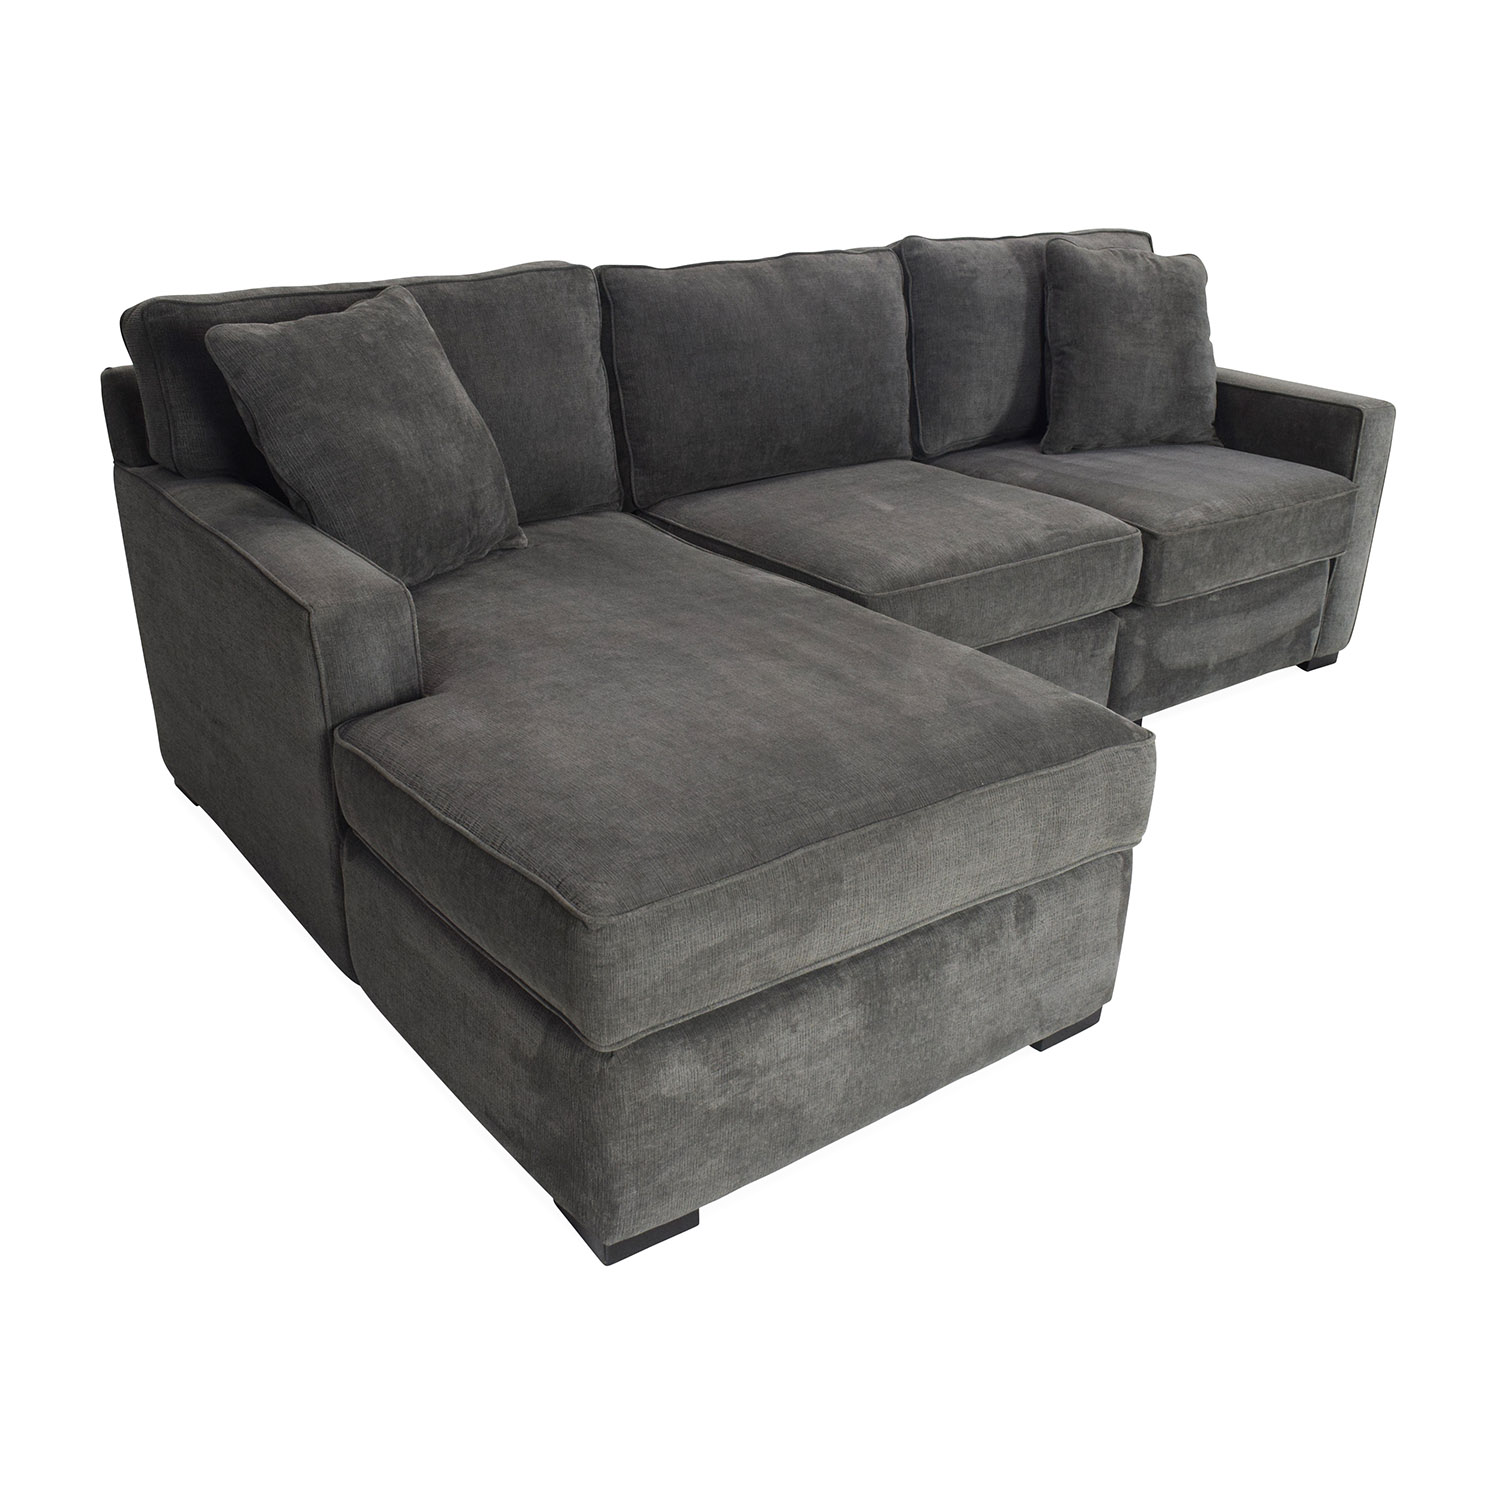 ... Macys Radley Sectional Sofa Dimensions ...